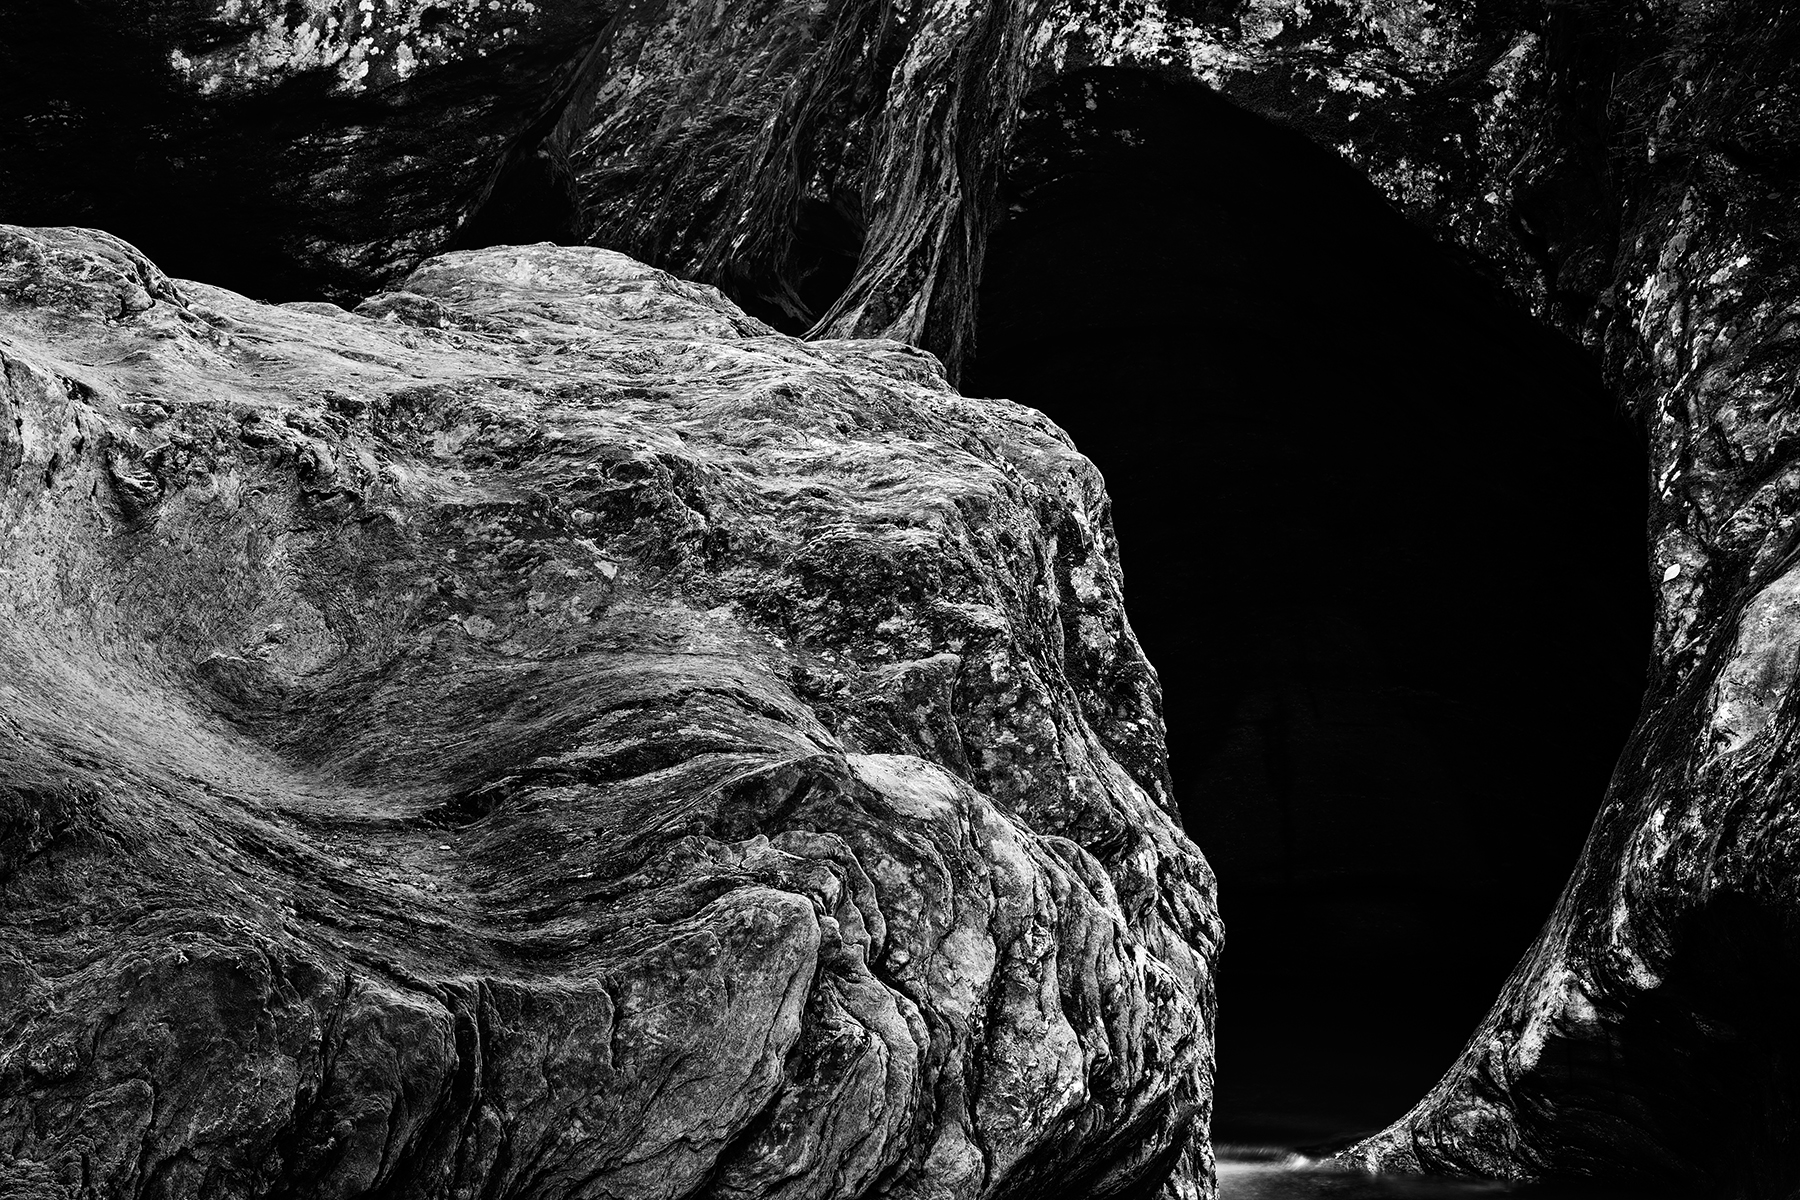 Gobble rock cave - black & white hdr photo